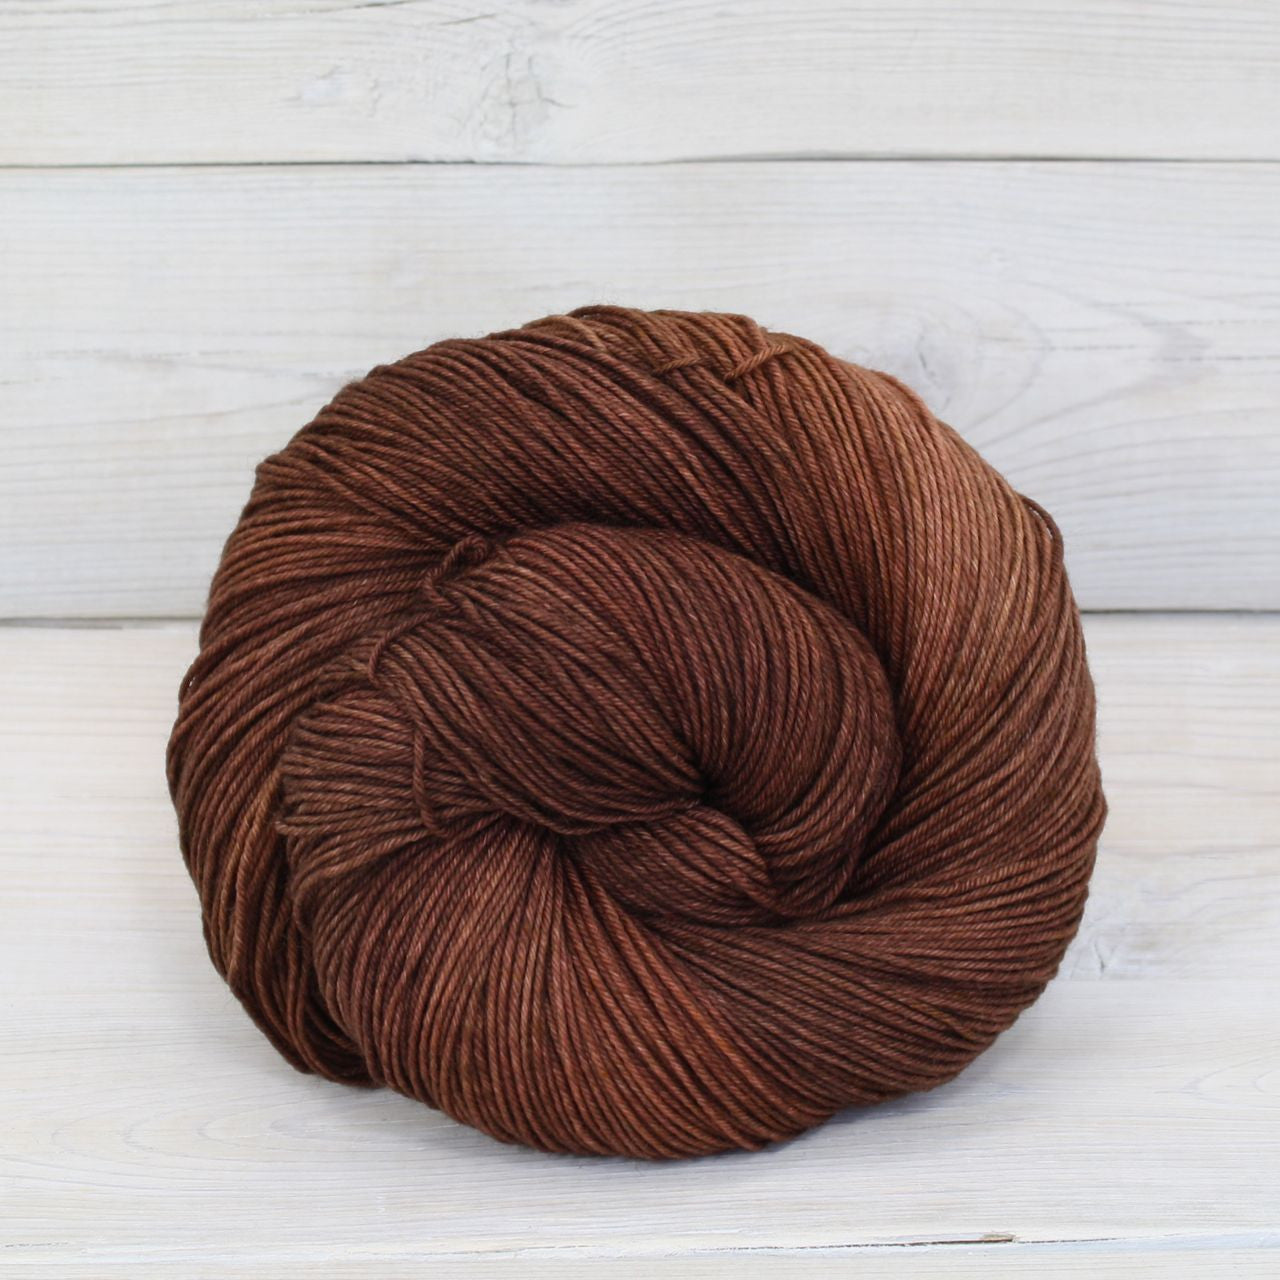 Luna Grey Fiber Arts Athena Sock Yarn | Colorway: Cinnamon